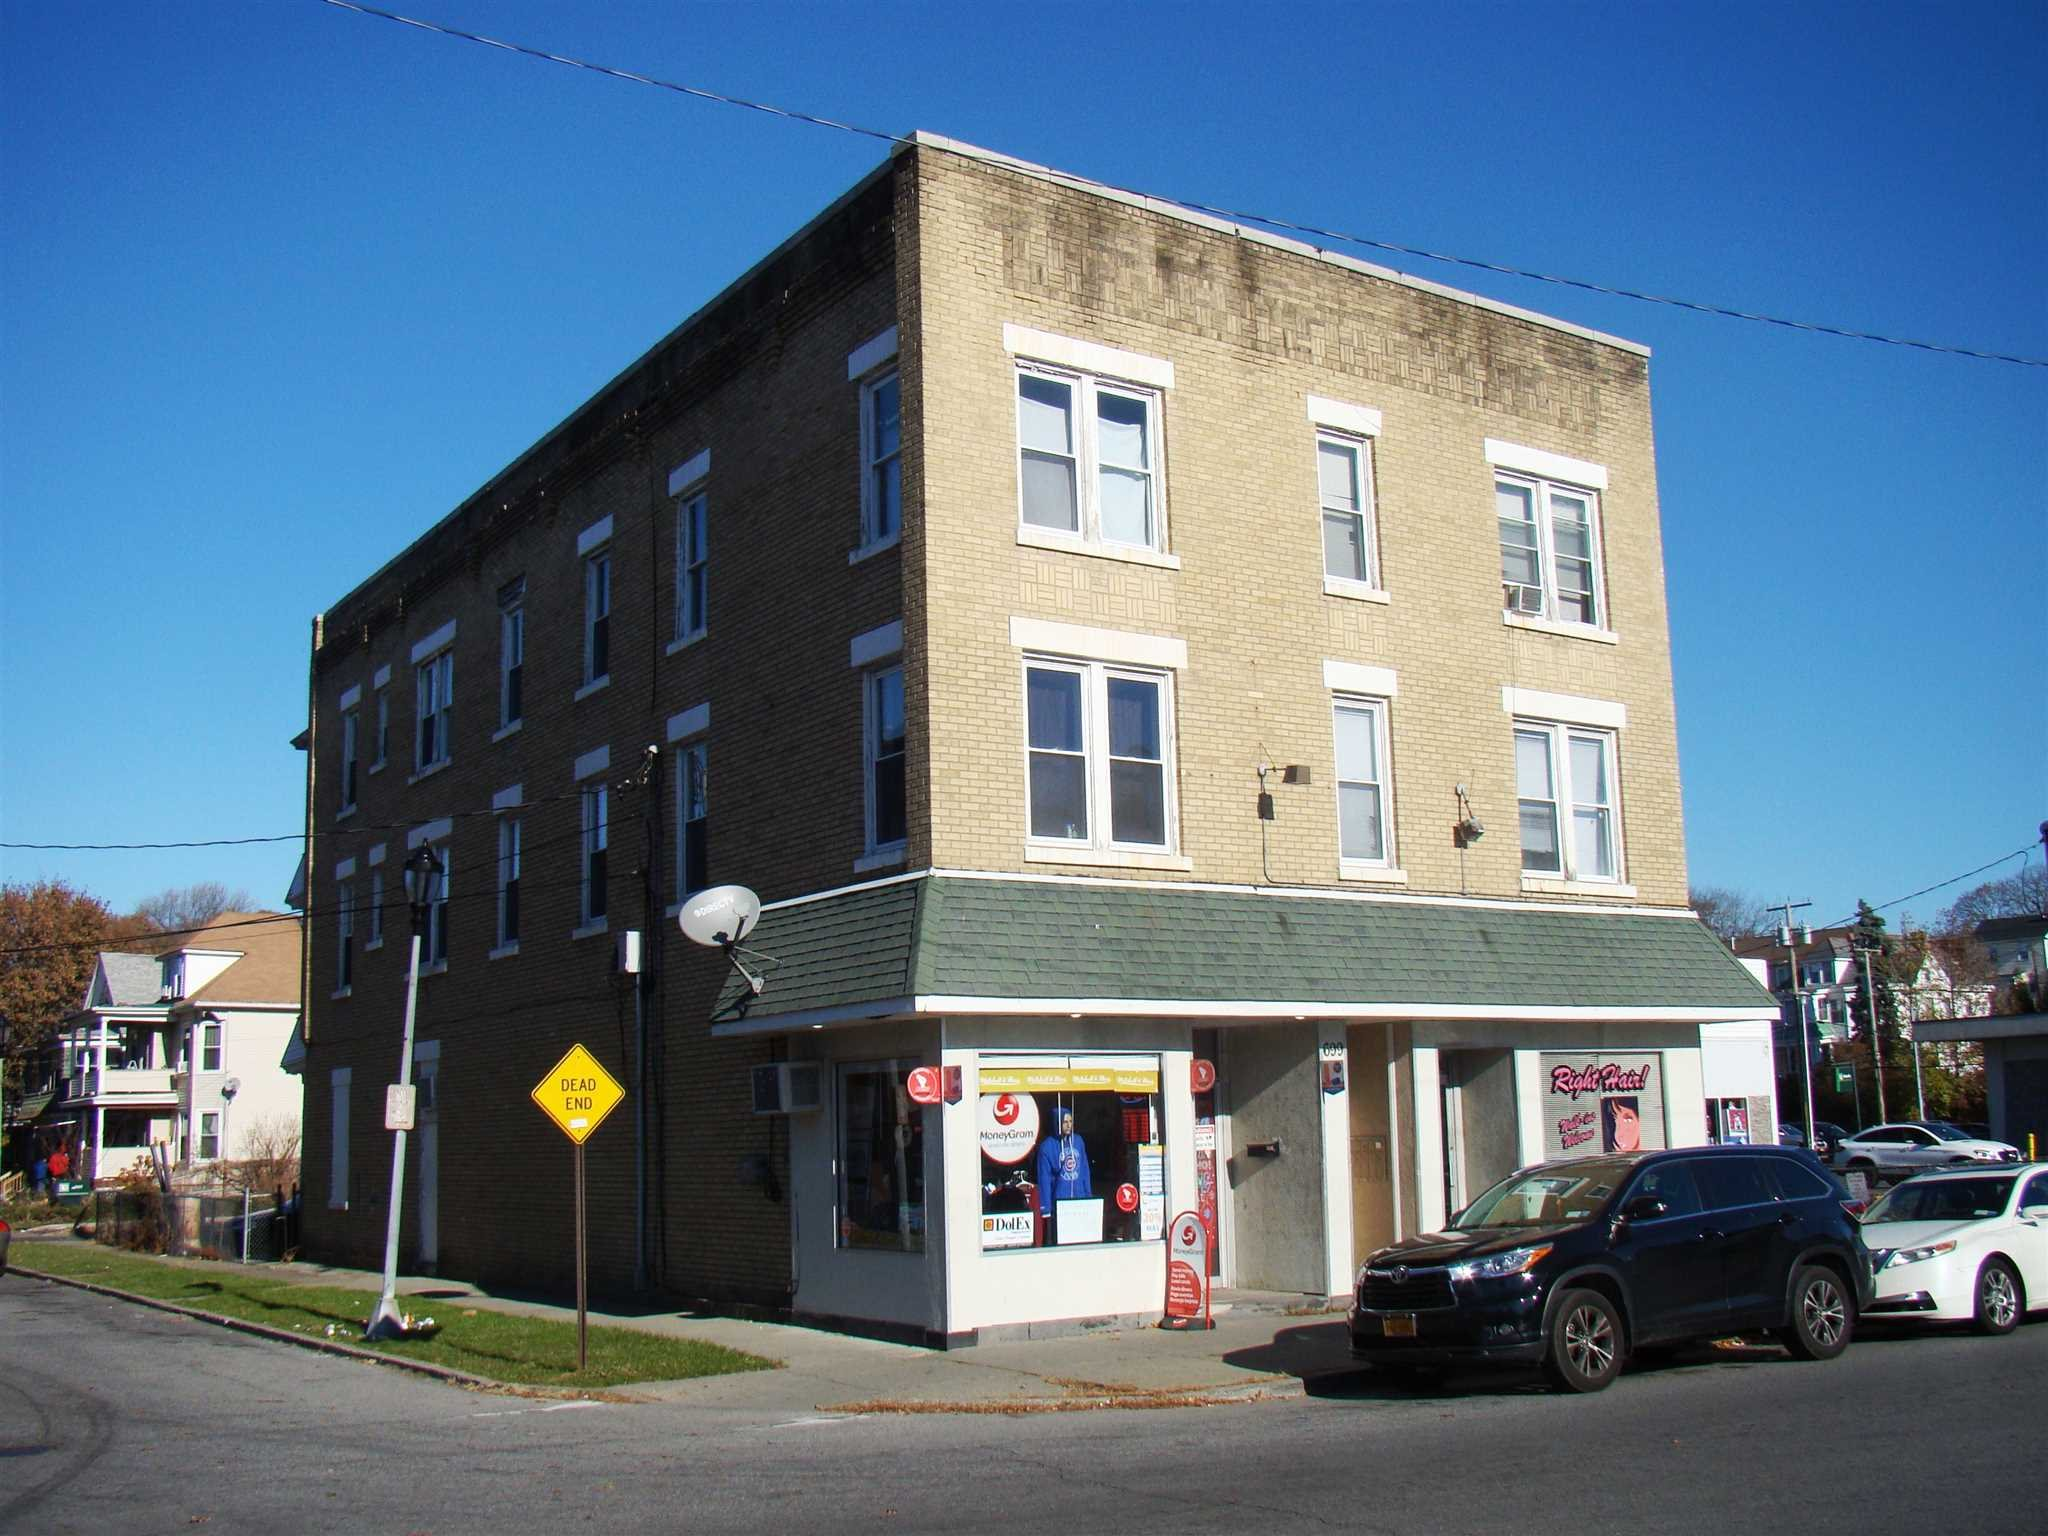 Additional photo for property listing at 699 MAIN Street 699 MAIN Street Poughkeepsie, New York 12601 United States